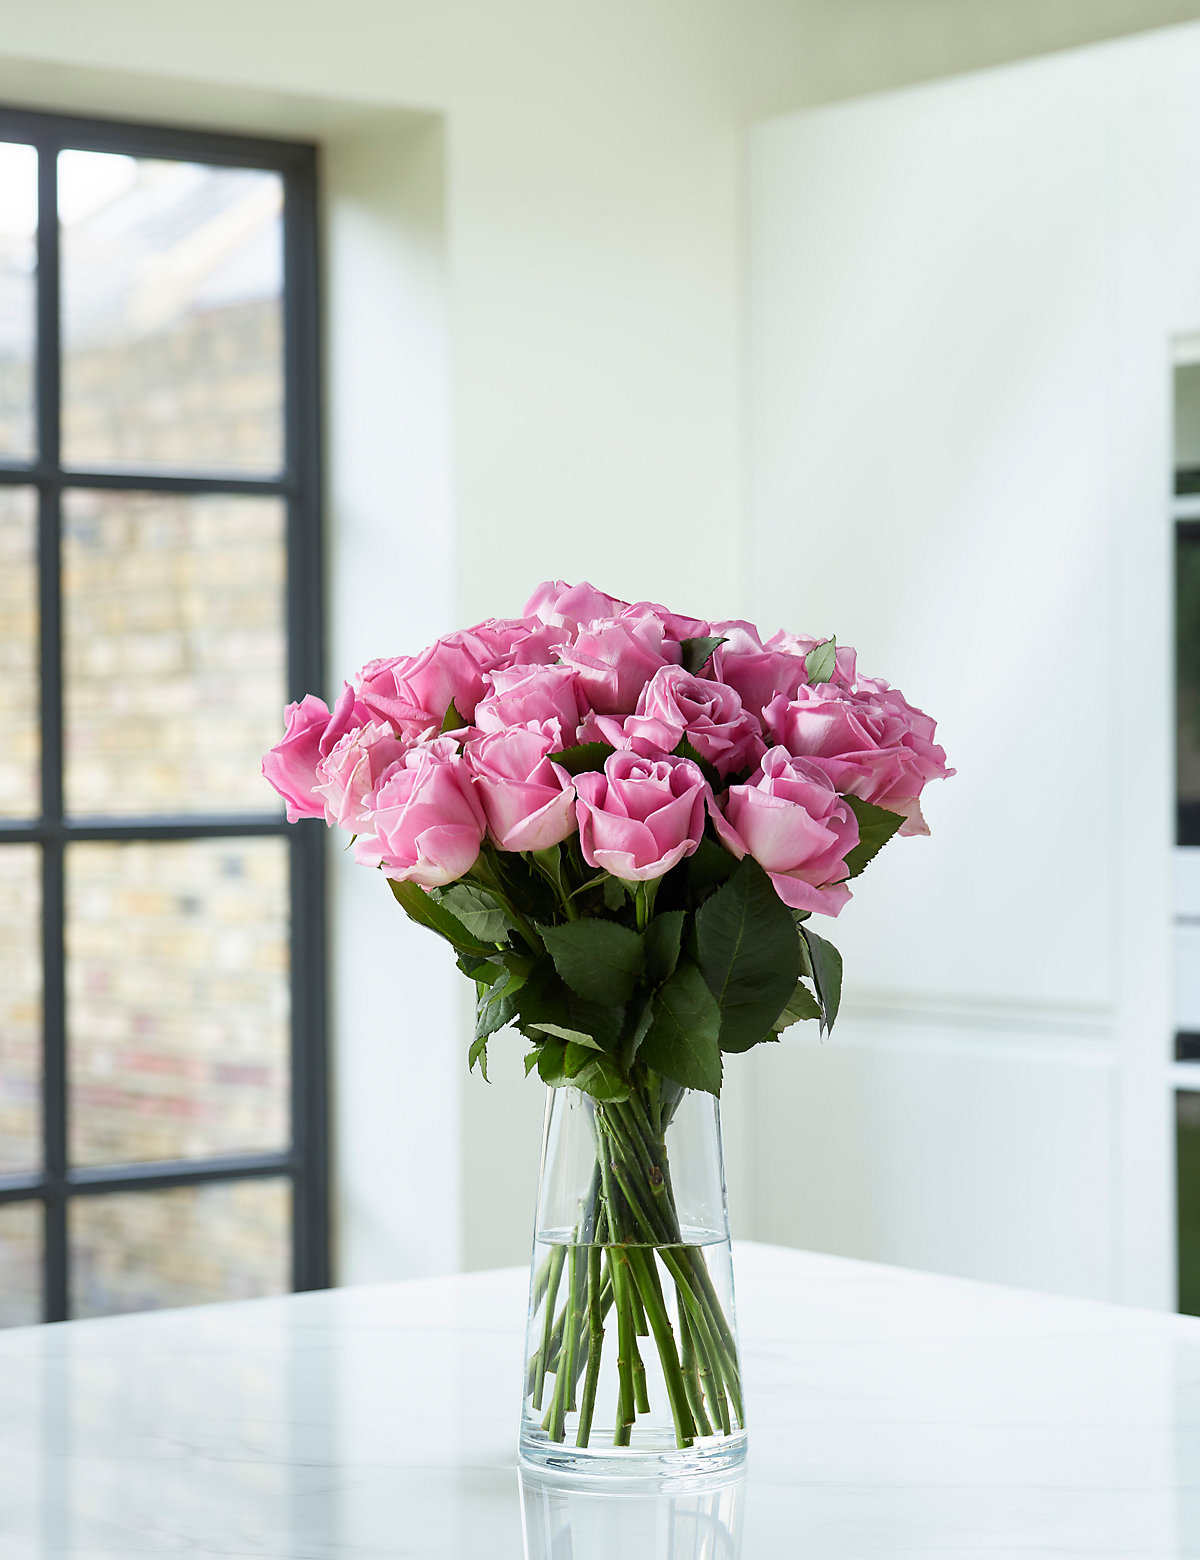 llll Marks & Spencer discount codes for December Verified and tested voucher codes Get the cheapest price and save money 12% off 12% off Flowers with Voucher @ Marks & Spencer. 06/08/ alphamike. 0 0 Comments. Enter the code at the checkout to get an Extra 12% off Flowers. Redeem code.